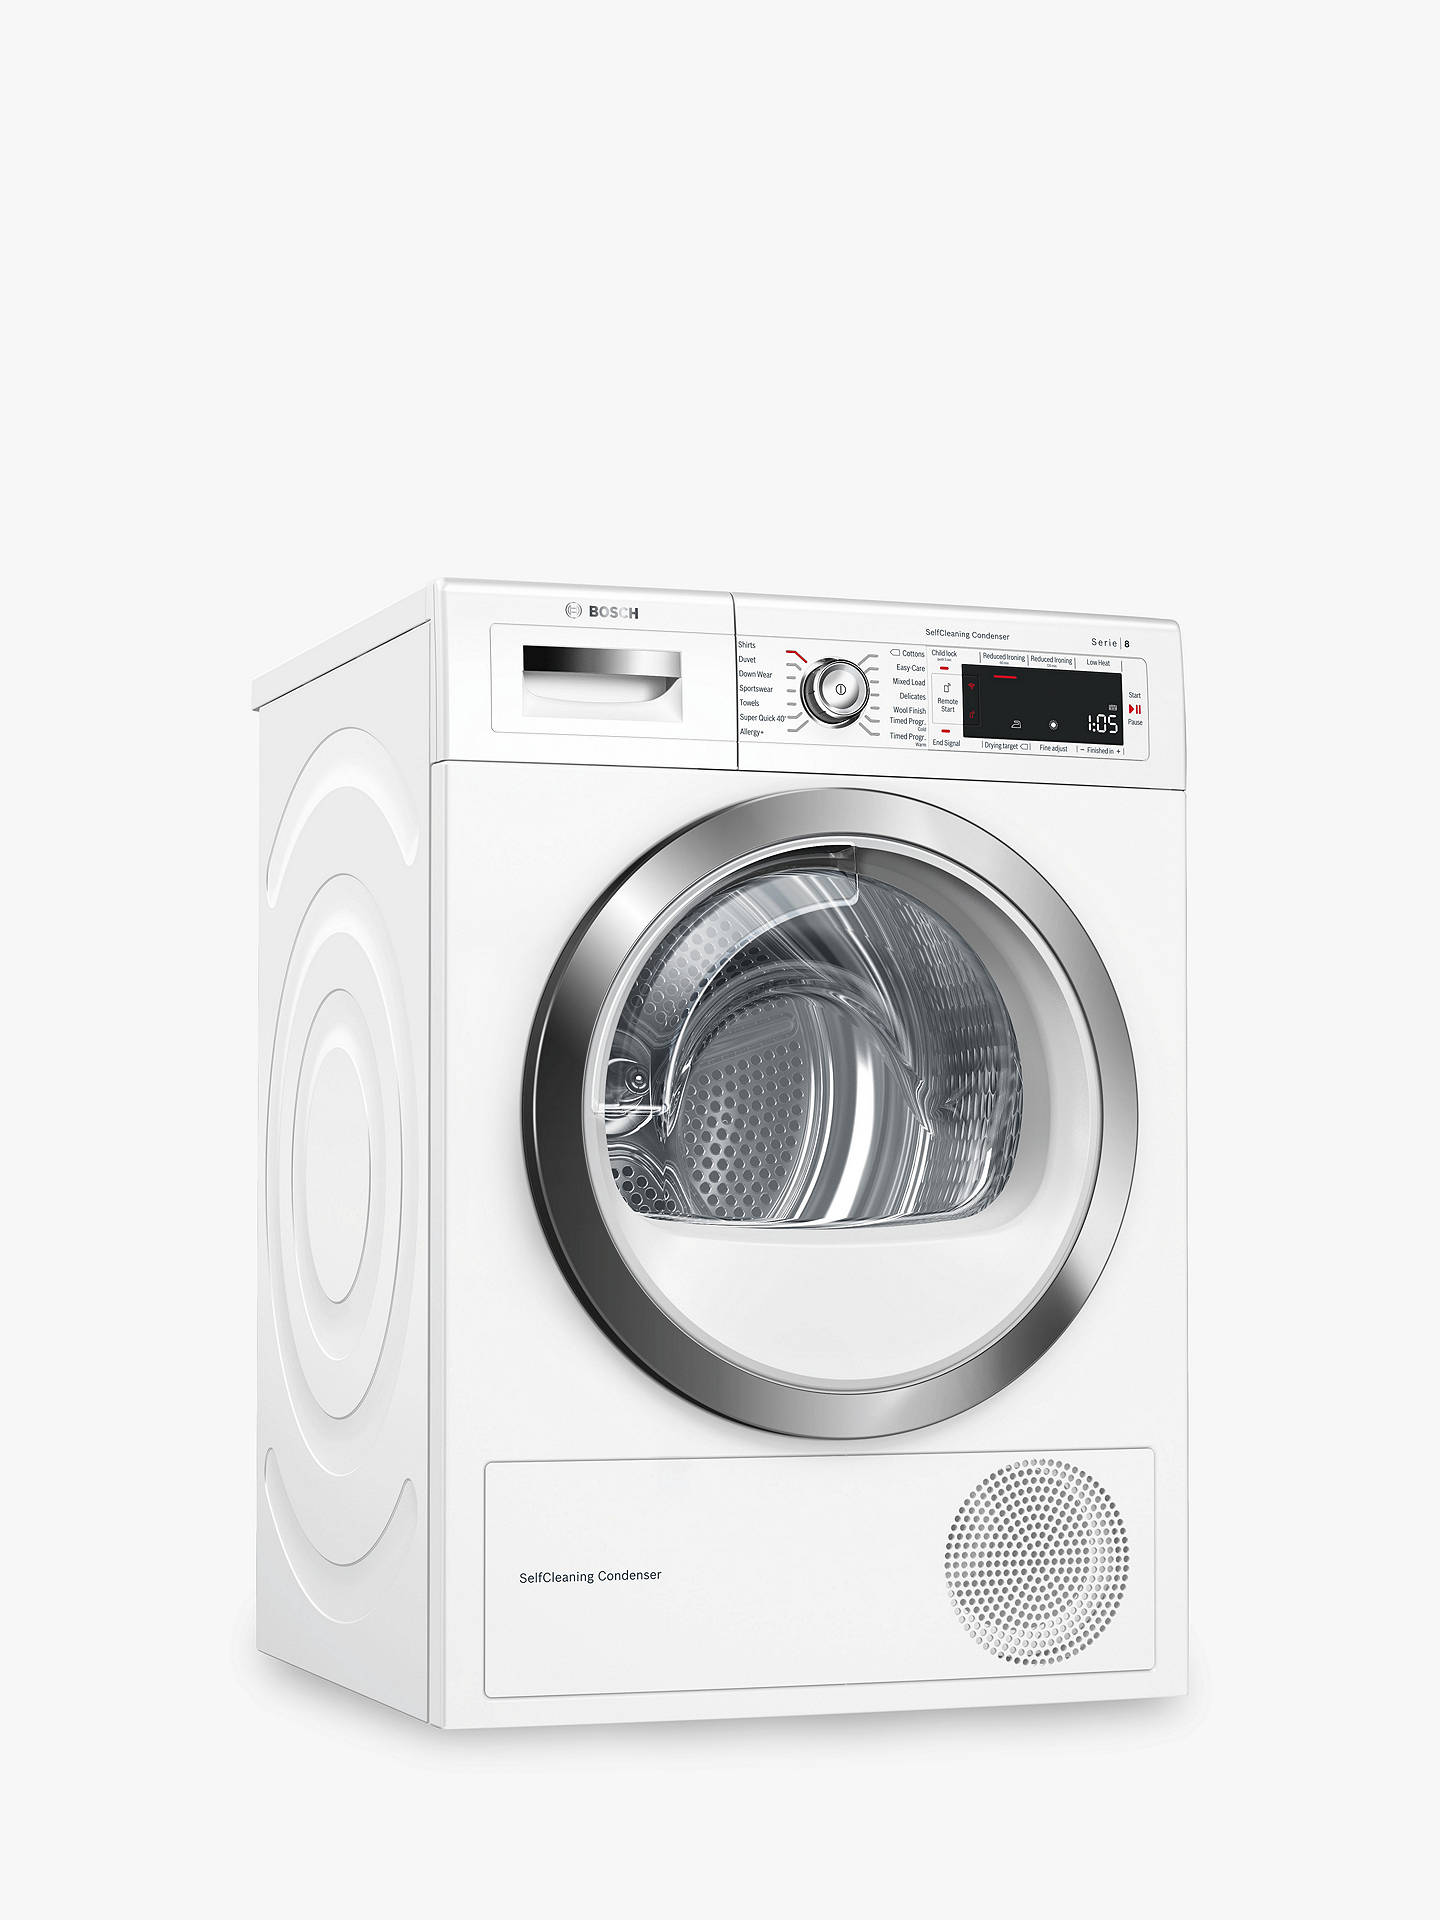 Bosch Wtwh7561gb Condenser Tumble Dryer With Heat Pump 9kg Load A